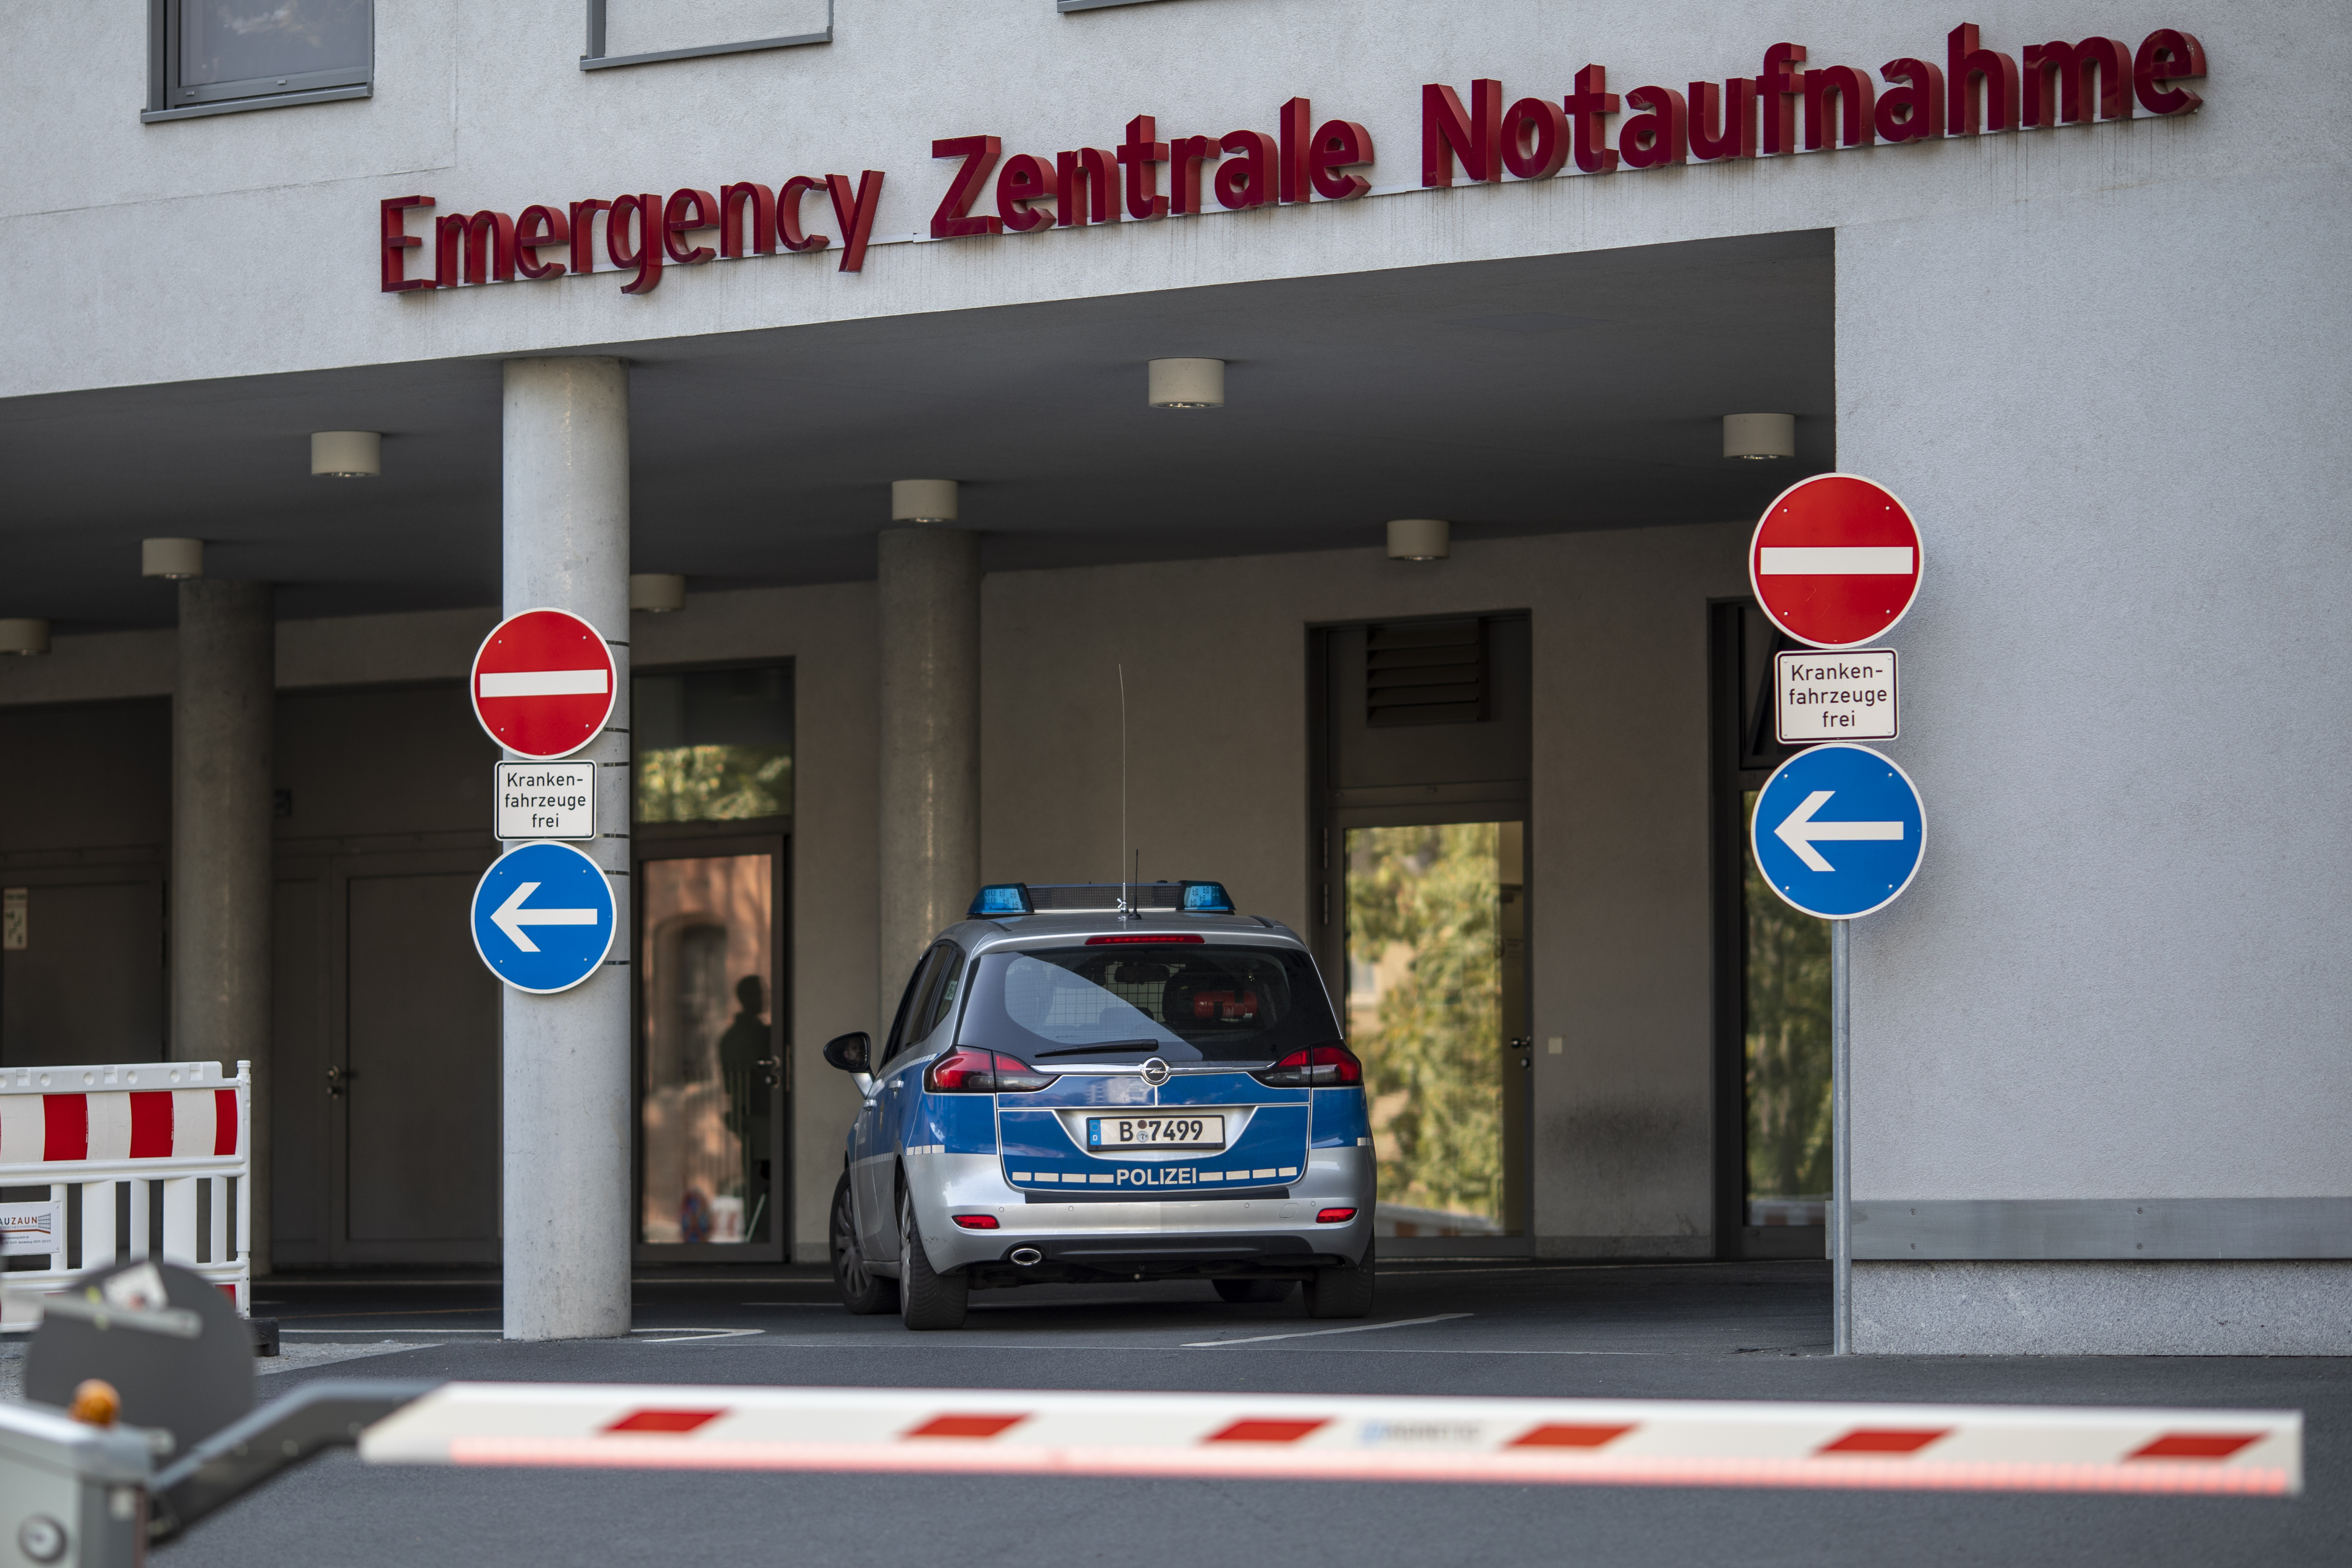 A police car drives to the Charite emergency hospital building where Russian opposition leader Alexei Navalny is treated on September 15, 2020 in Berlin, Germany.